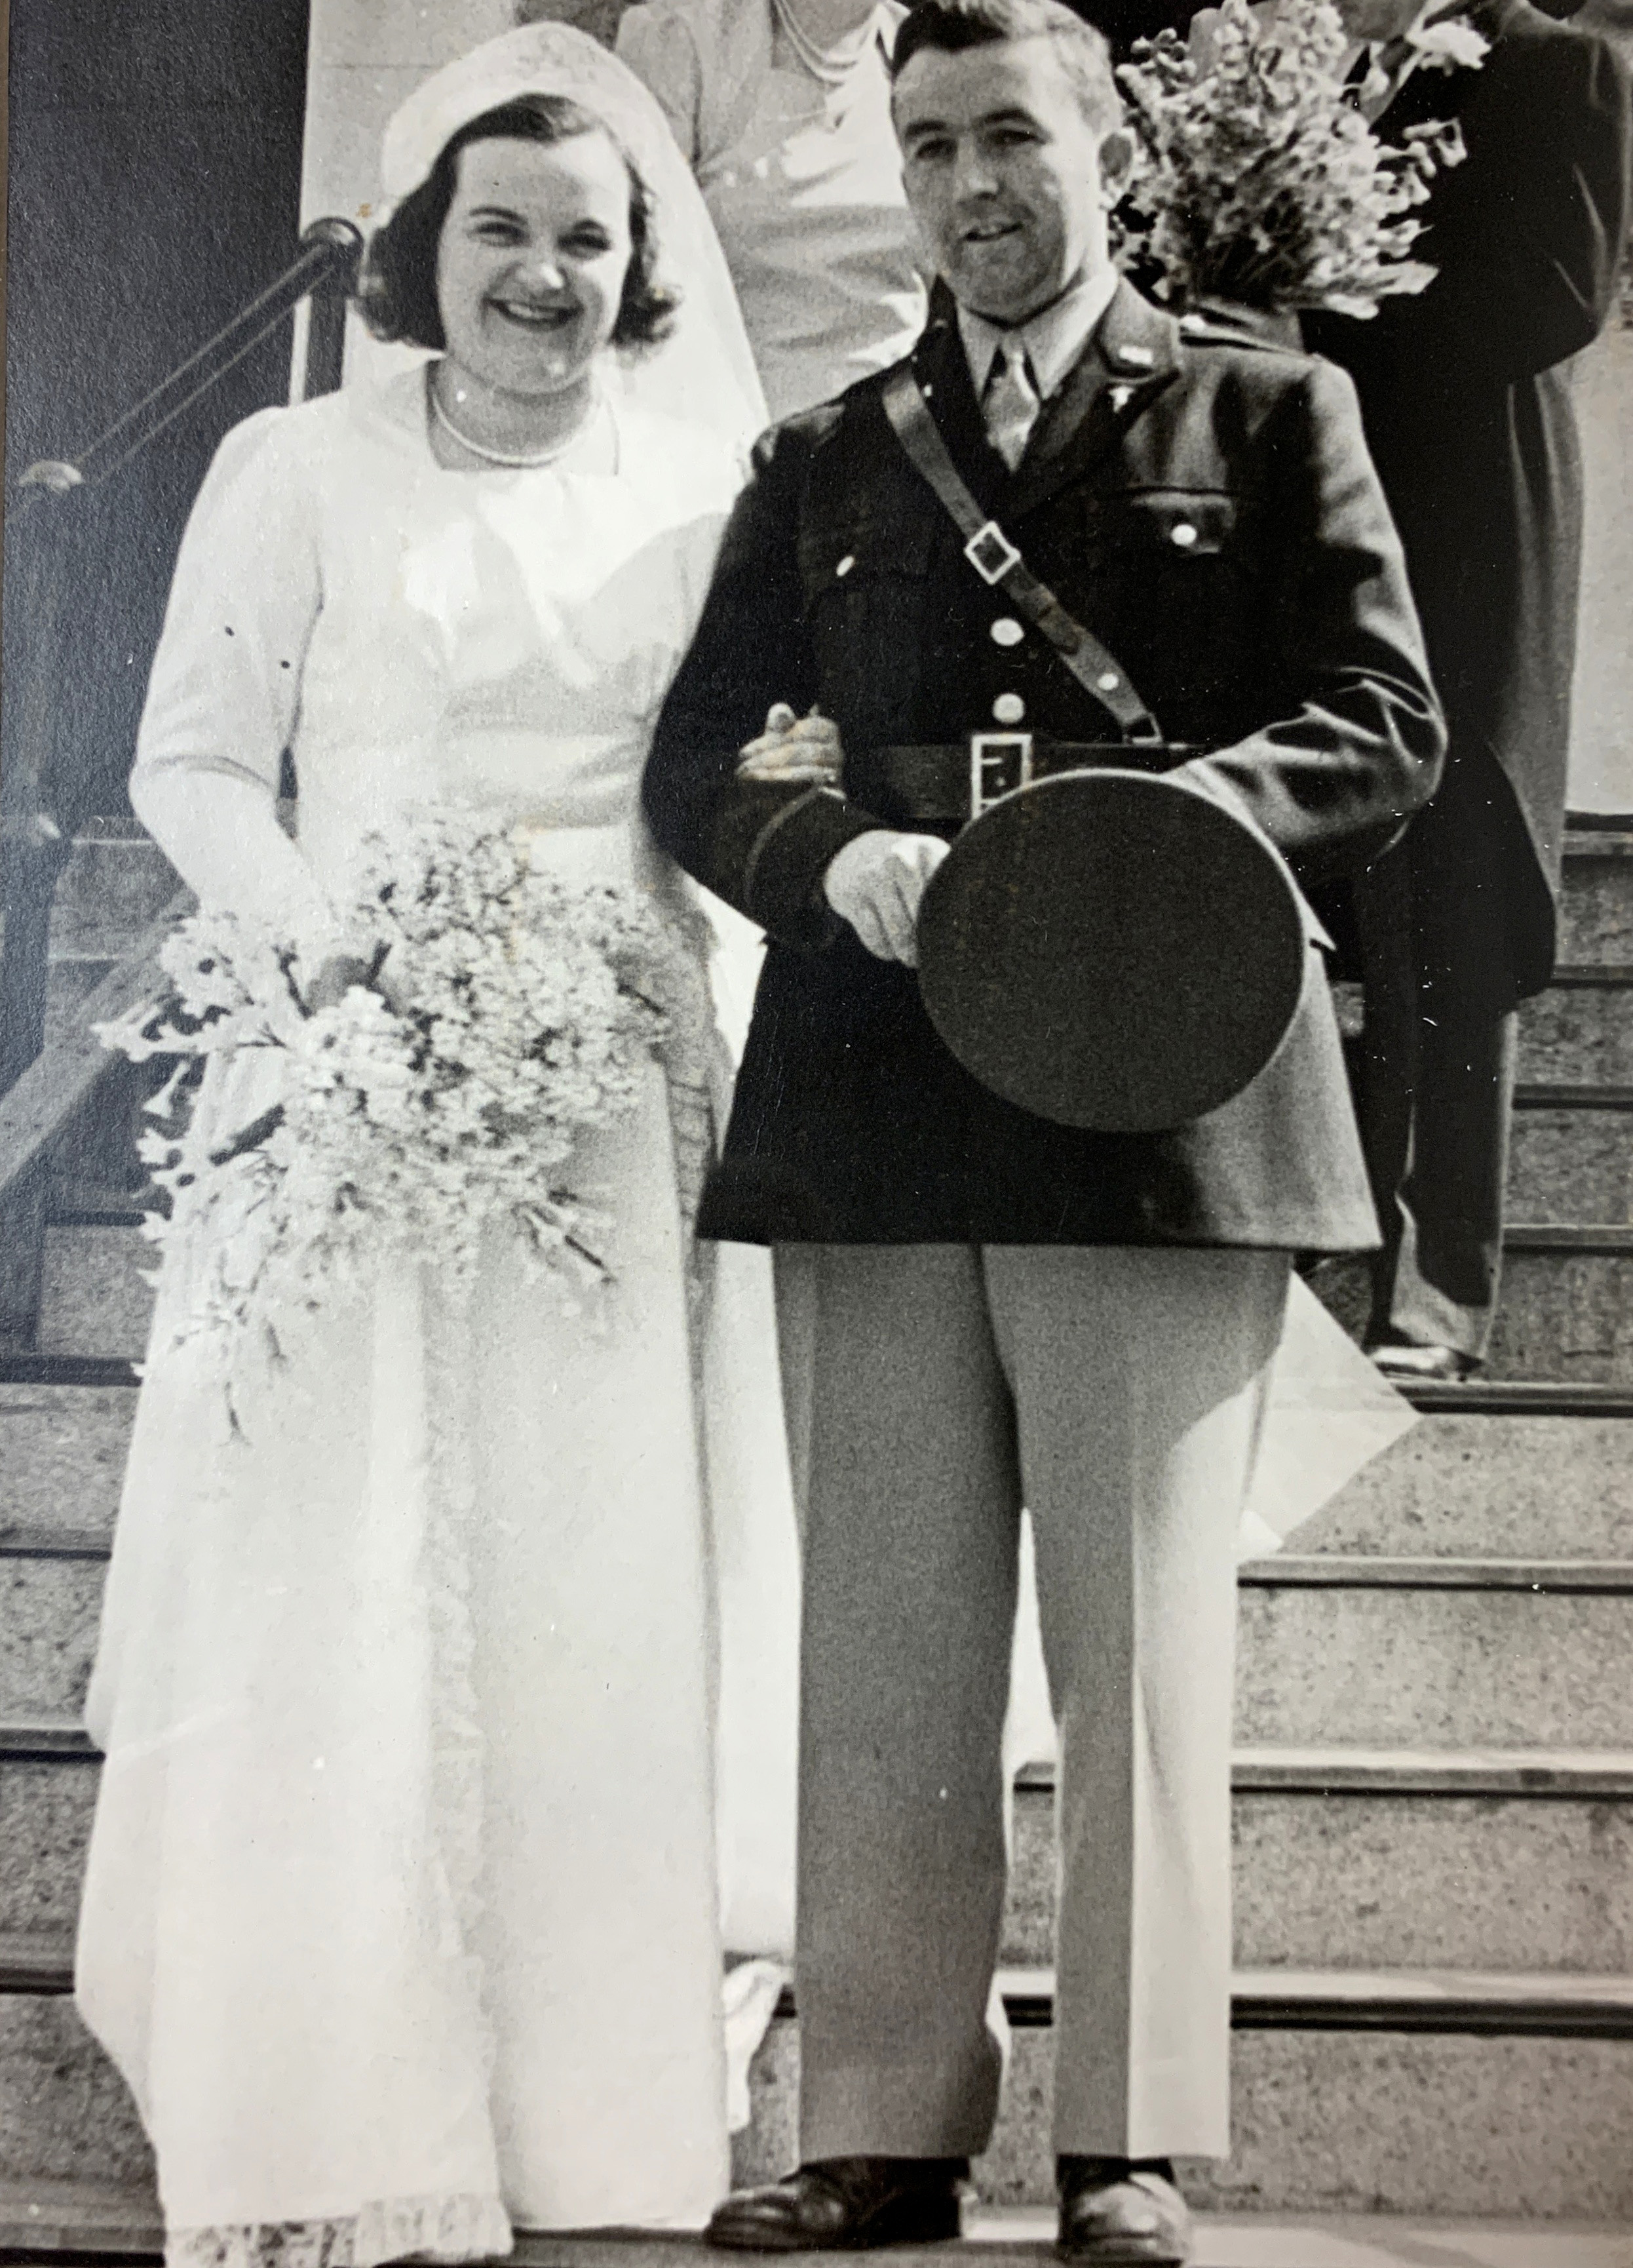 Wedding of Alice M. Brennan and William F. Rock at St. Michael's Church on April 6, 1942. These are the parents of parishioners Mary Alice and Paul Rock.